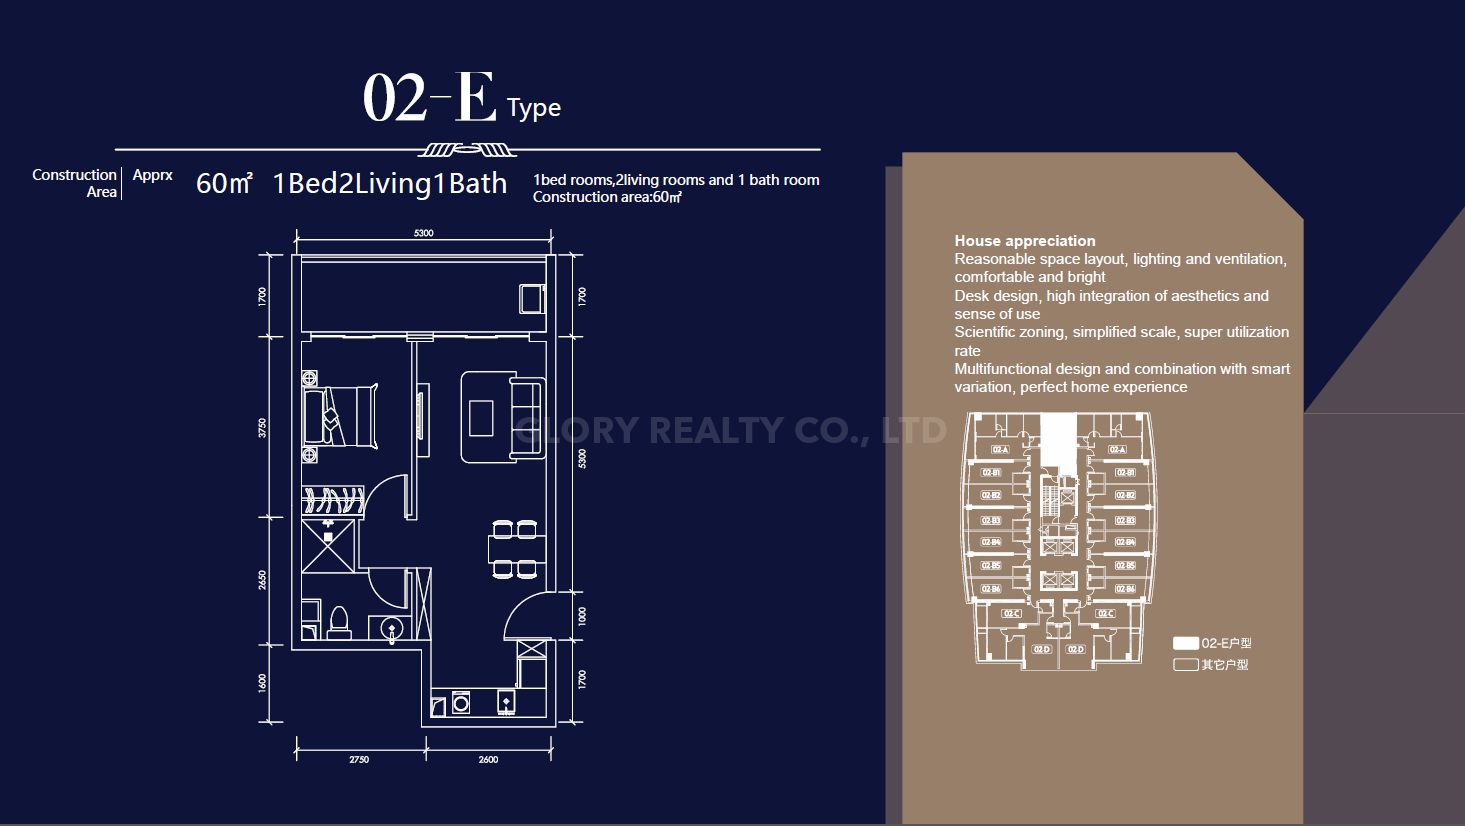 02-E (1 Bed, 2 Living, 1 Bath) Type